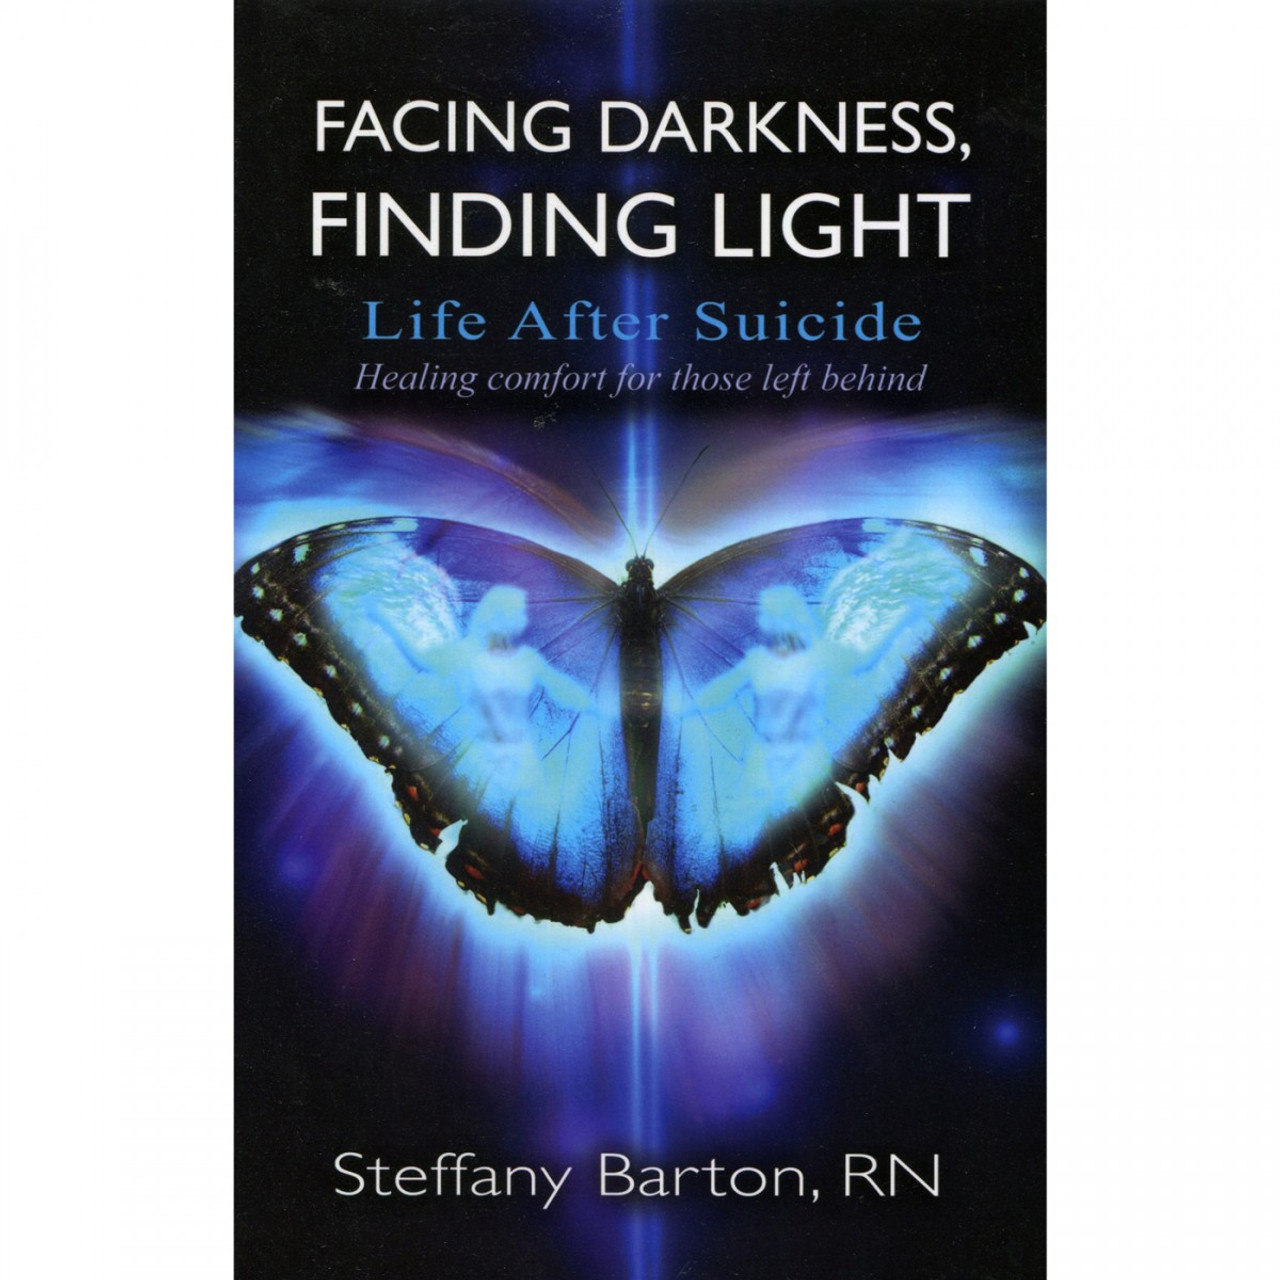 Facing Darkness, Finding Light by Steffany Barton